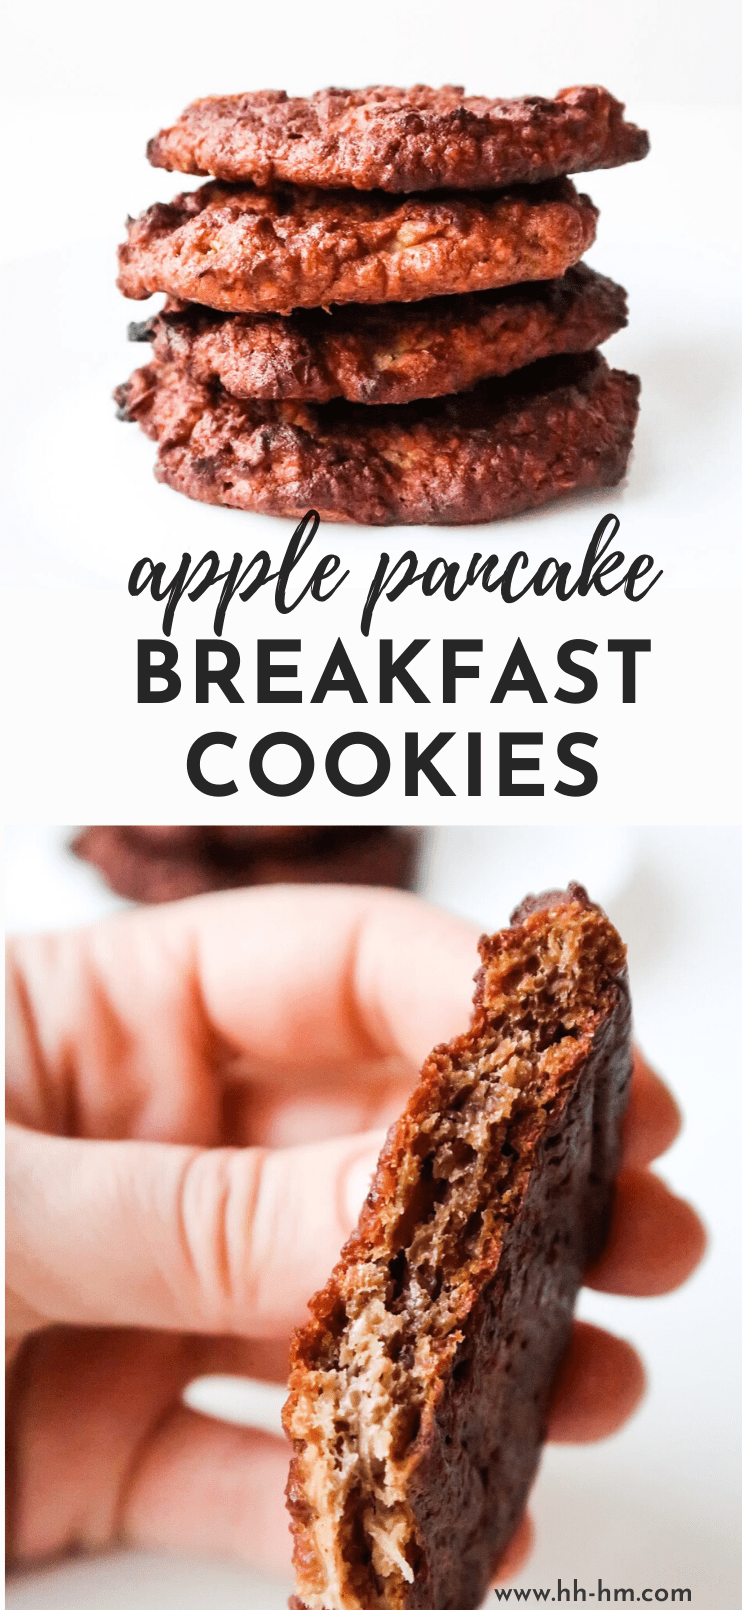 Healthy apple pancake breakfast cookies! This is an easy meal prep breakfast that is healthy and super delicious and can be eaten on the go! These healthy cookies are also great when you're dealing with a huge sweet tooth!